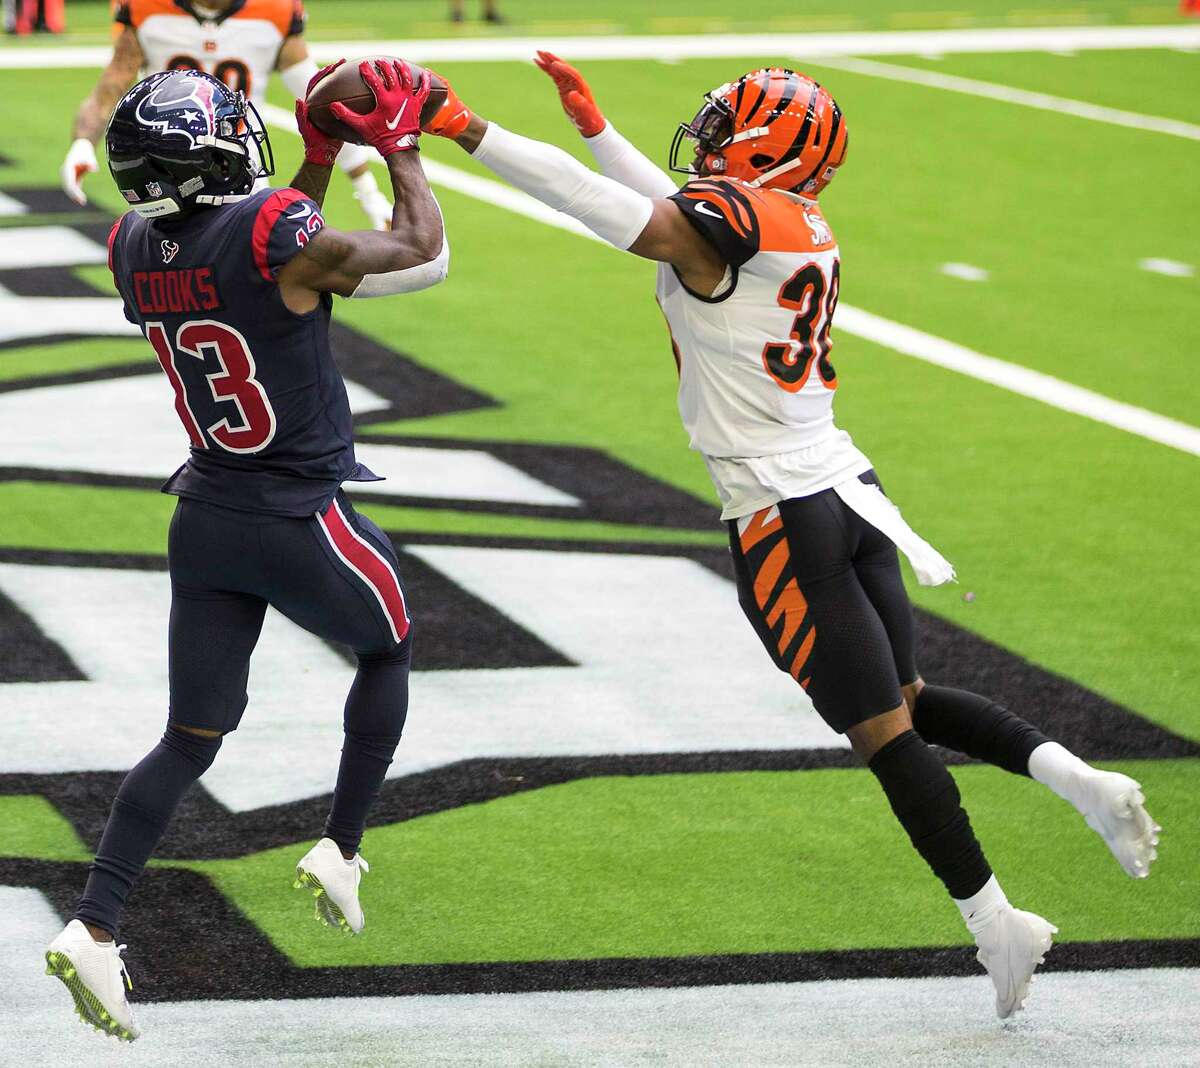 Houston Texans wide receiver Brandin Cooks (13) beats Cincinnati Bengals free safety Jessie Bates (30) into the end zone for a touchdown reception during the second quarter of an NFL football game at NRG Stadium on Sunday, Dec. 27, 2020, in Houston.